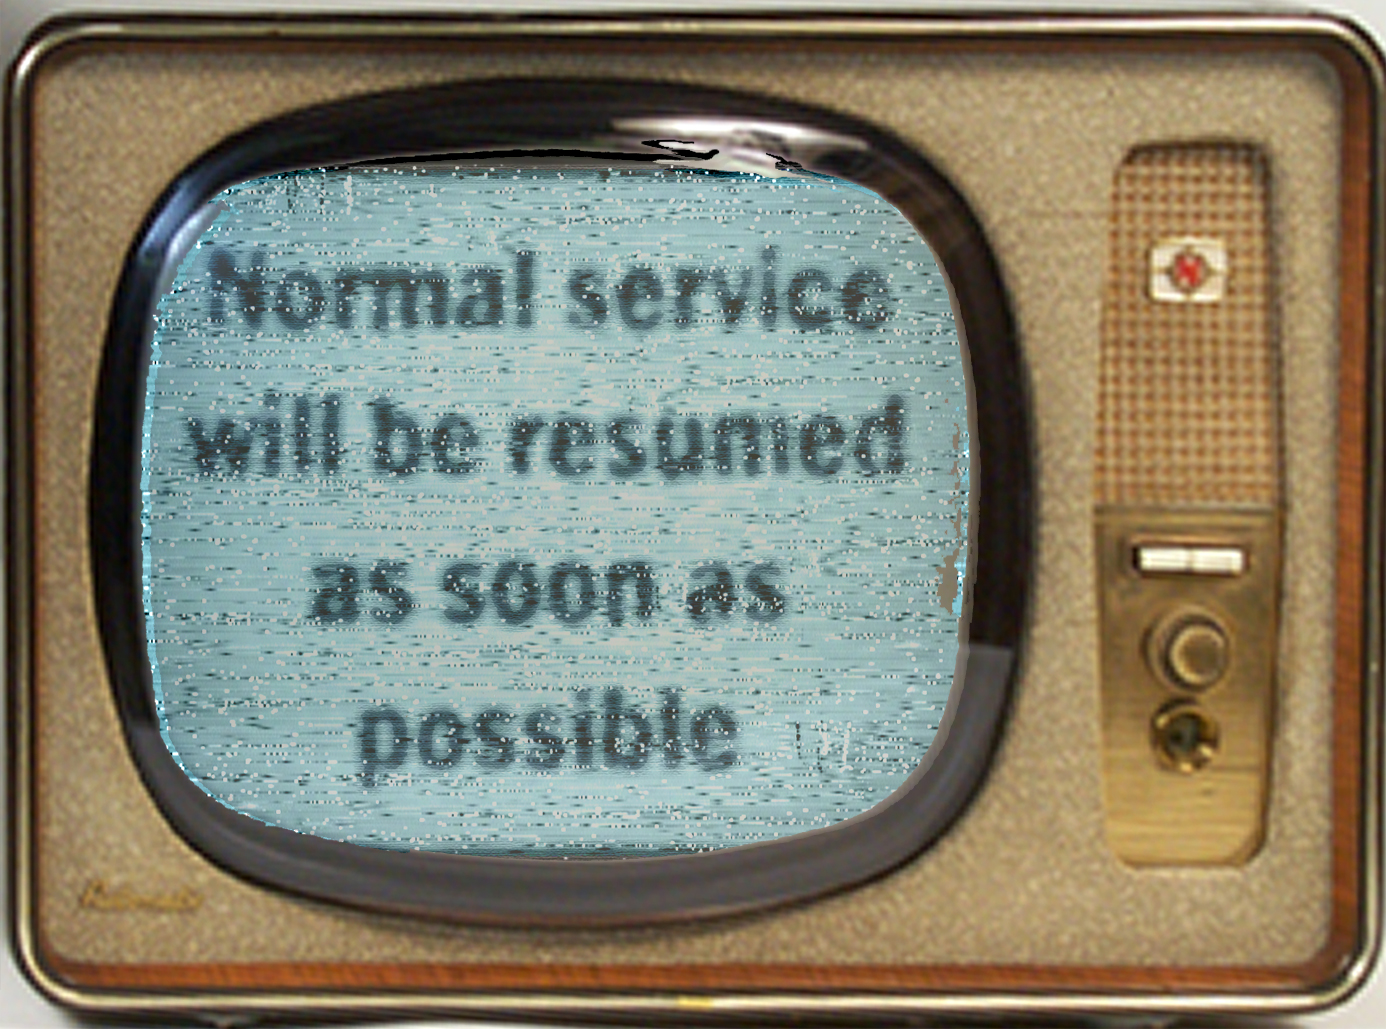 Normal service will be resumed as soon as possible | The Renaissance  Mathematicus